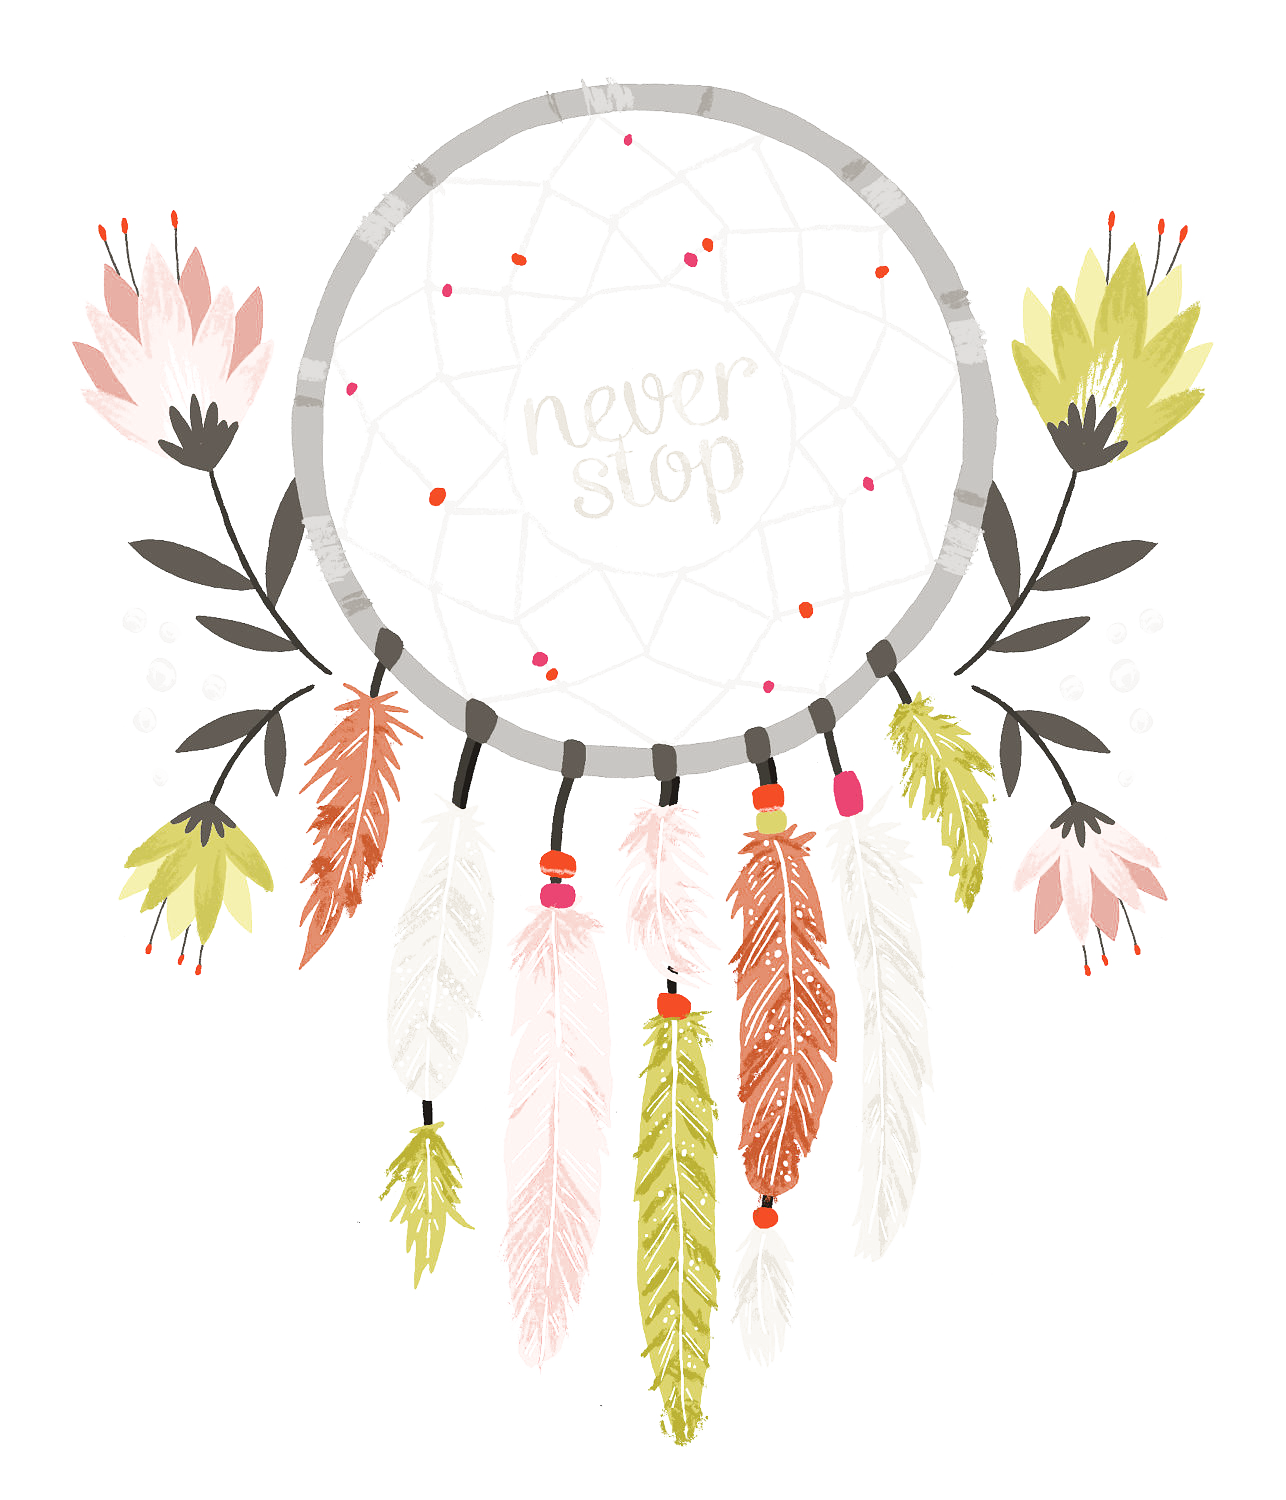 Dreamcatcher clipart high resolution. Png images transparent free